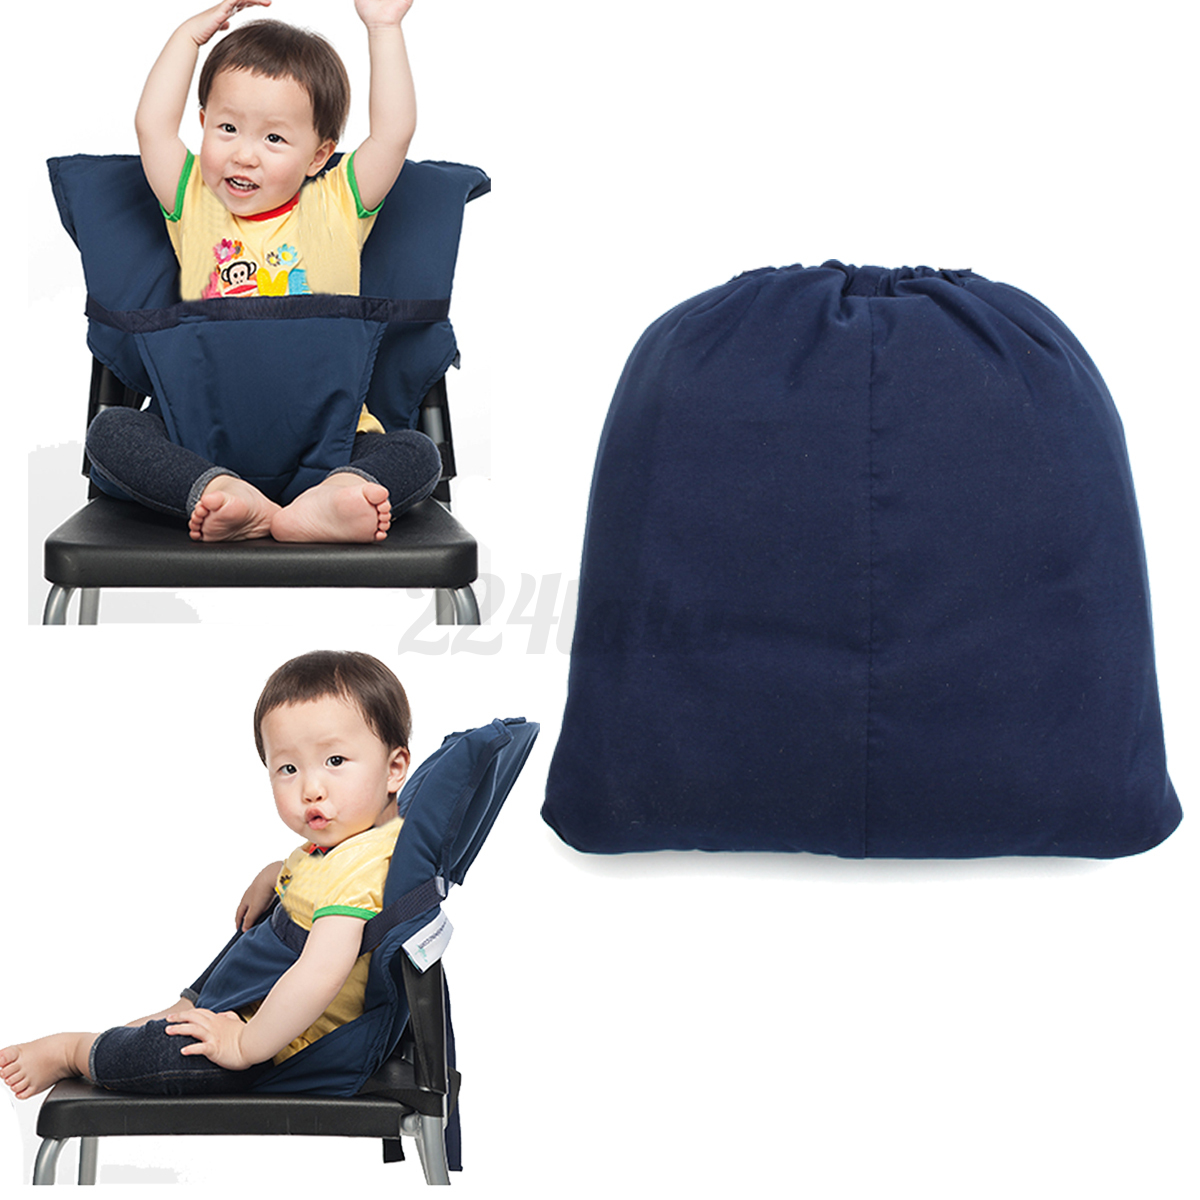 Baby Chair For Eating New Baby Portable High Chair Feeding Seat Infant Kiskise